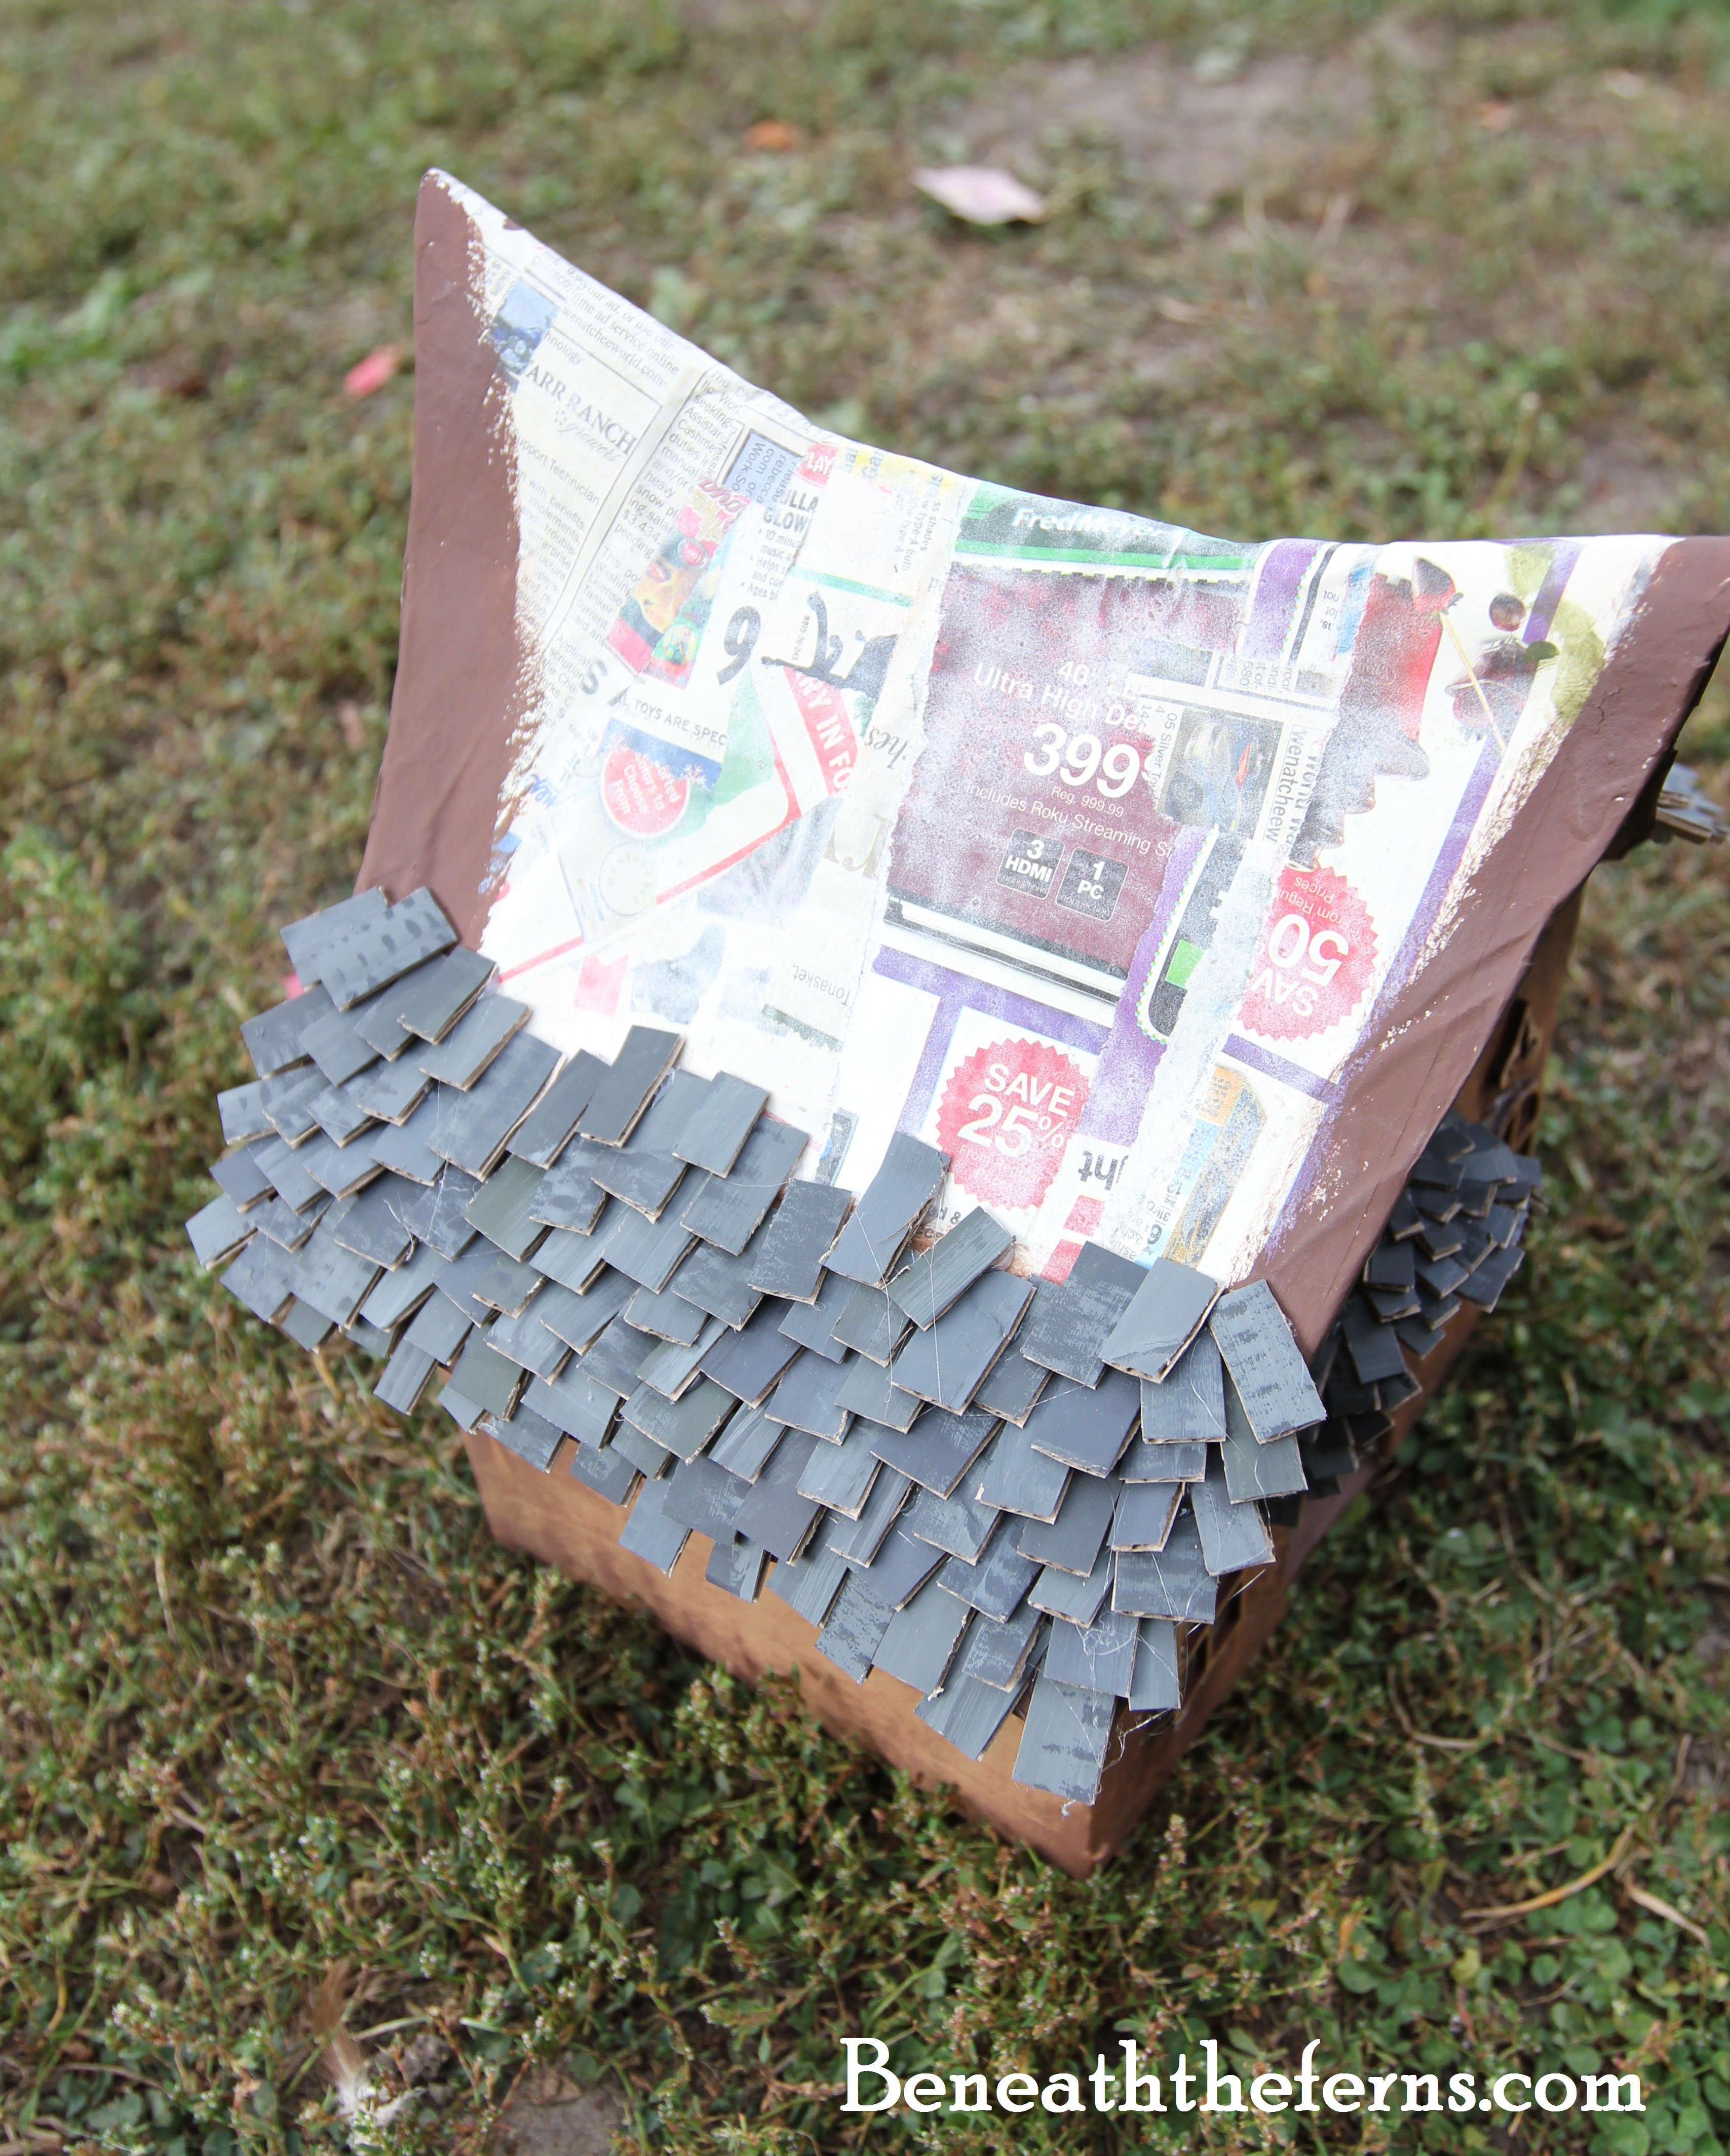 How To Make A Fairy House Roof With Shingles Beneath The Ferns